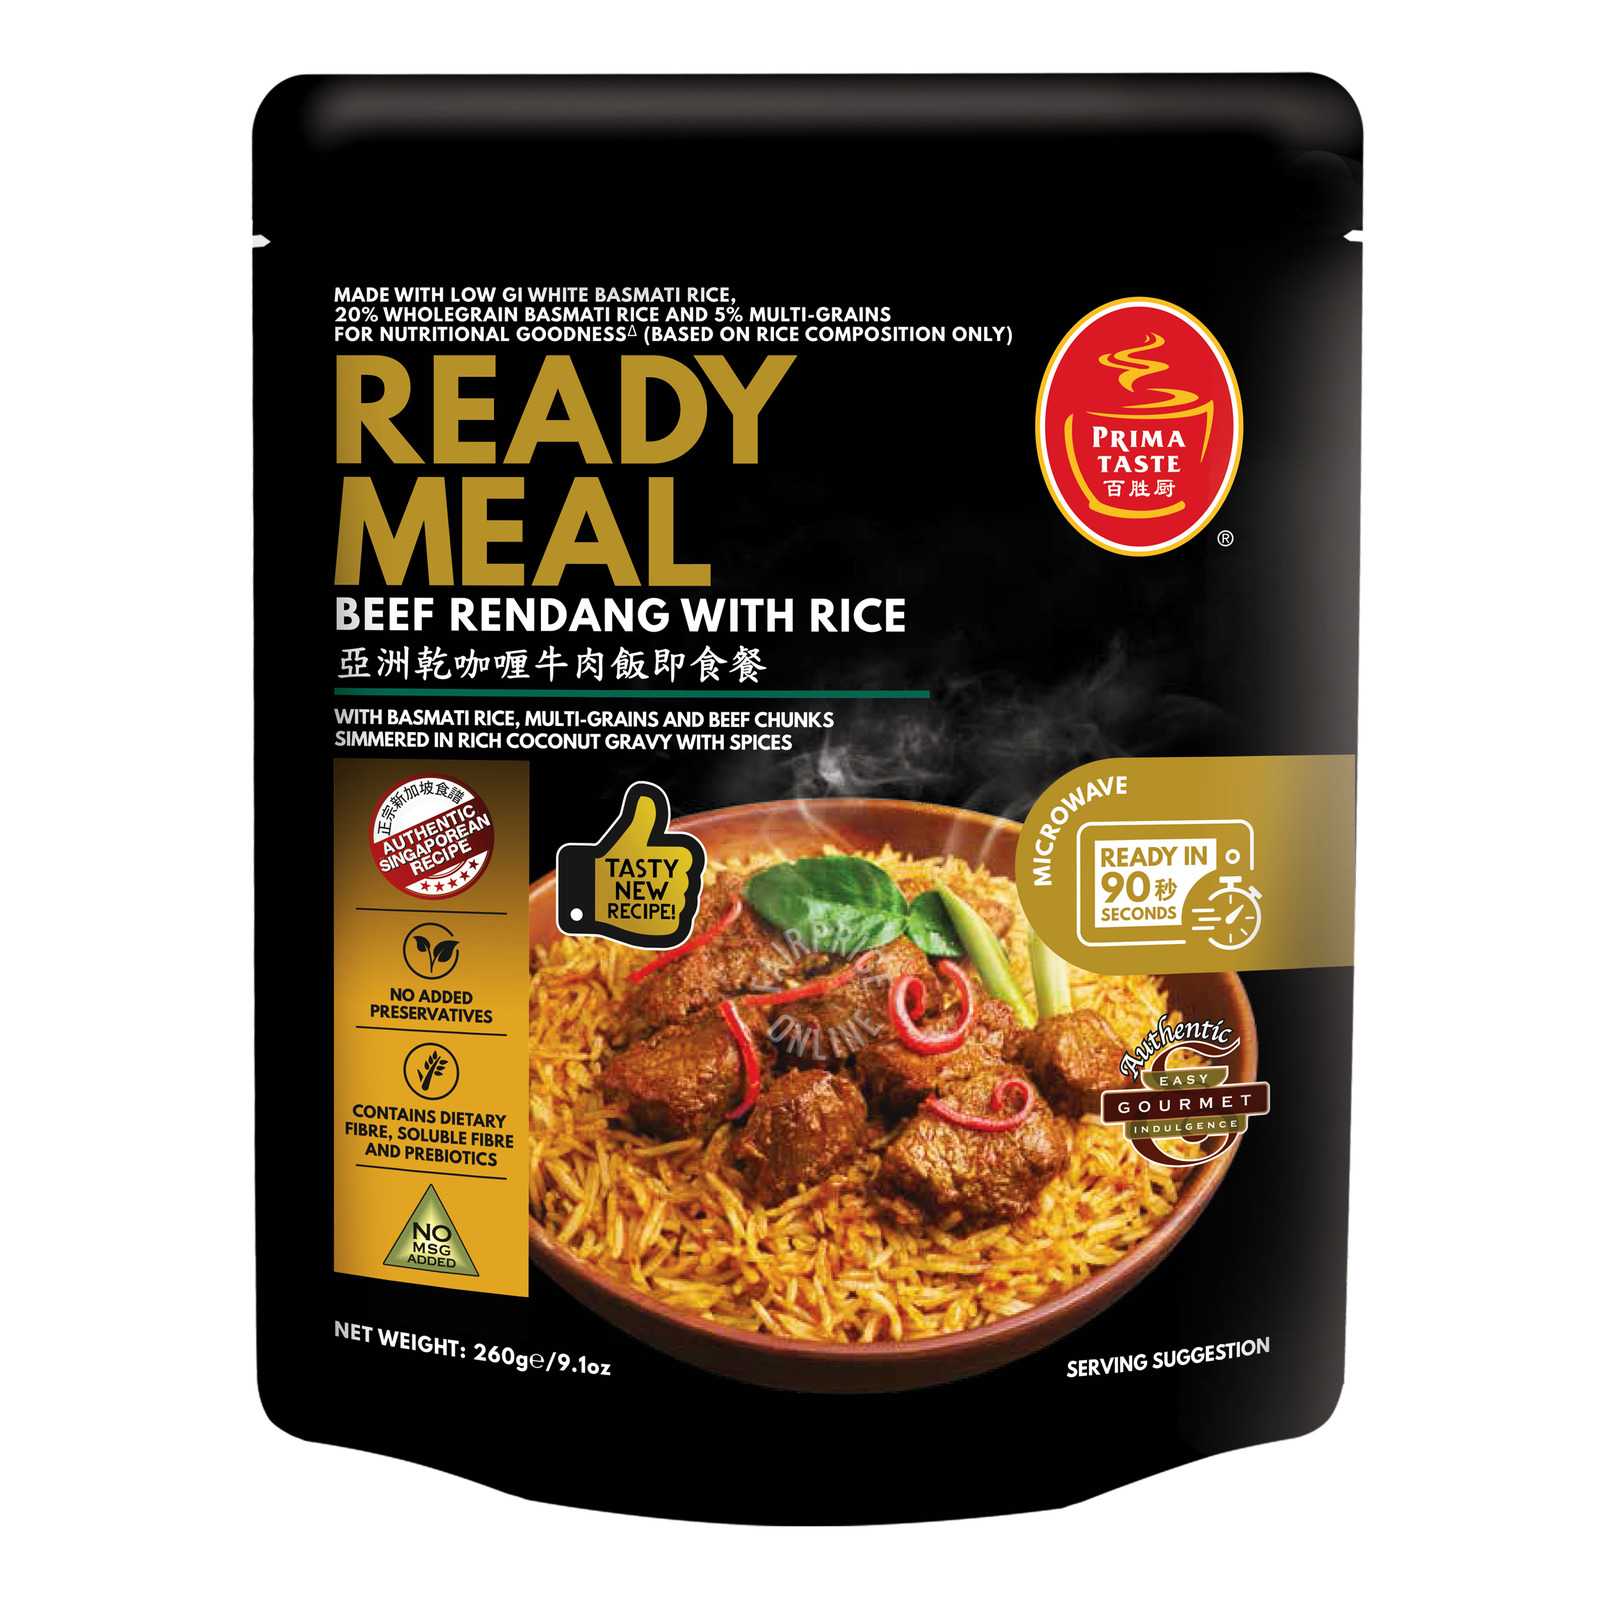 Prima Taste Ready Meal - Beef Rendang with Rice